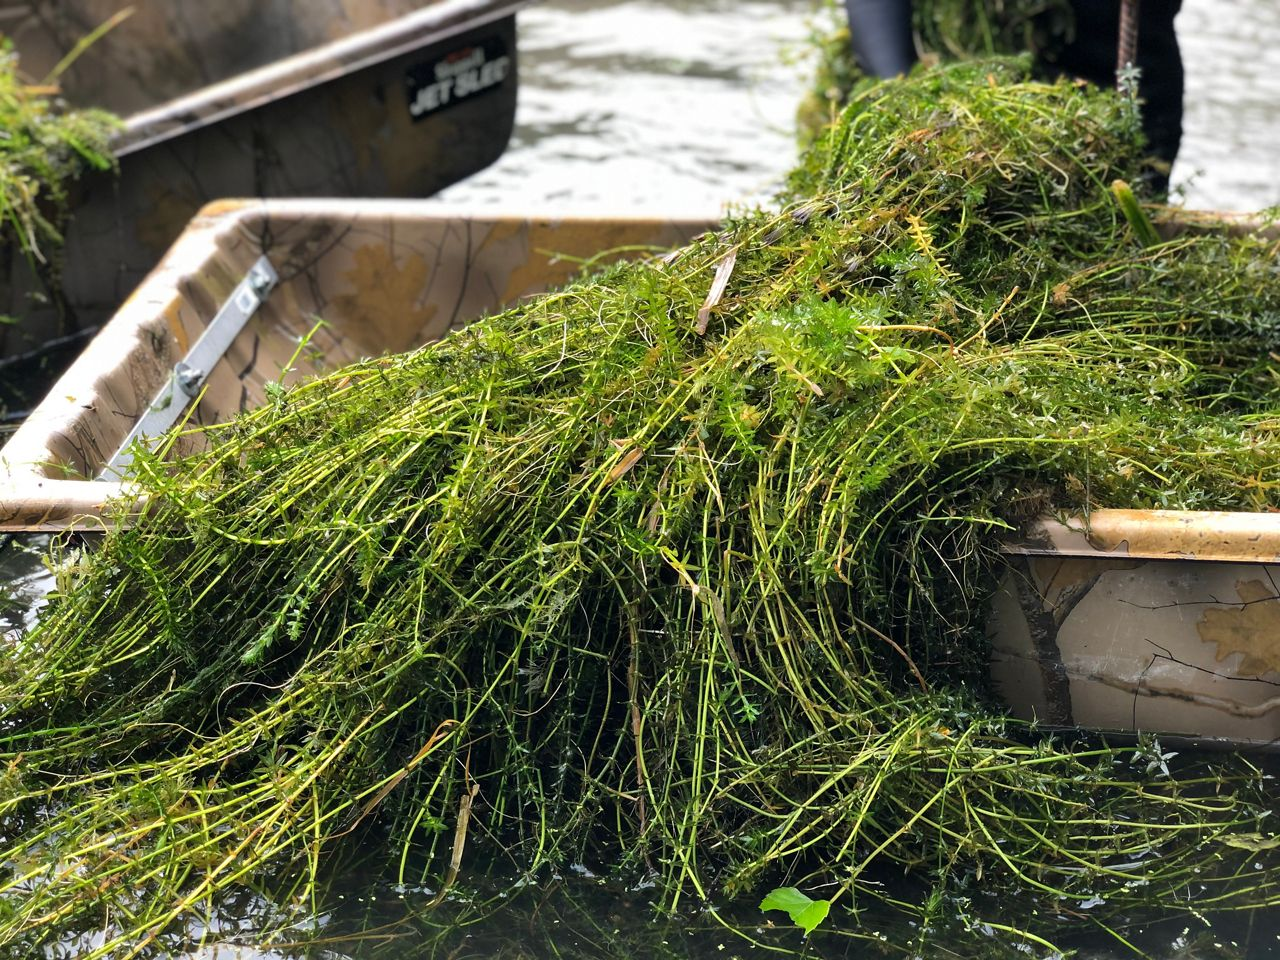 Bucket full of invasive plants that were removed from the San Marcos River. (Charlotte Scott/Spectrum News 1)